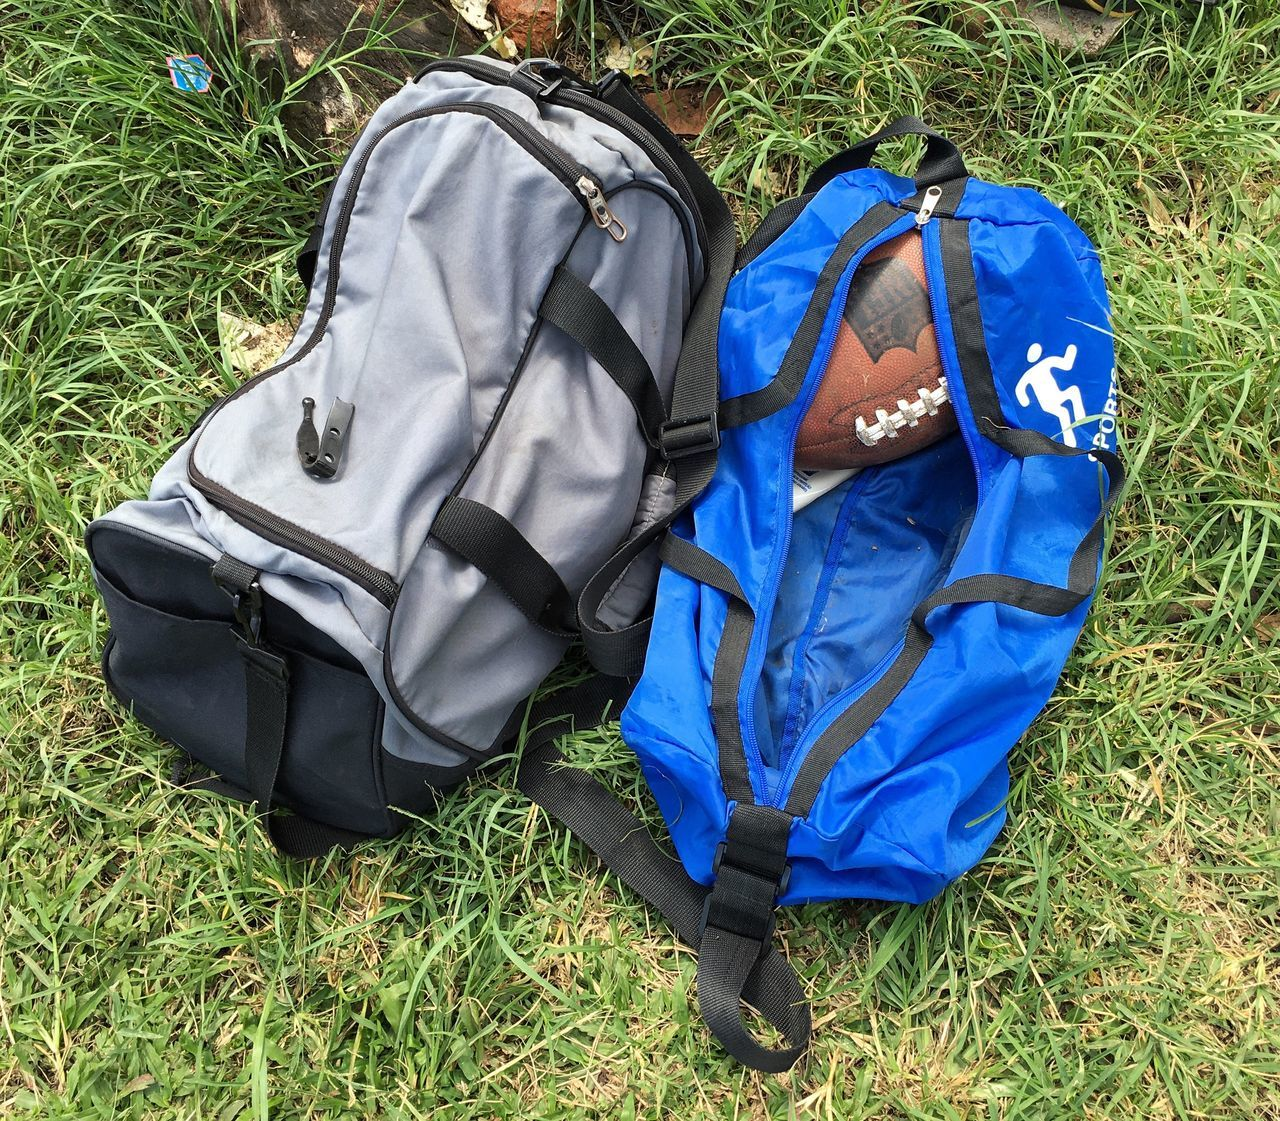 Two Is Better Than One Sports What's In My Bag  Waiting Football In The Bag Outdoors Leisure Activity TakeoverContrast